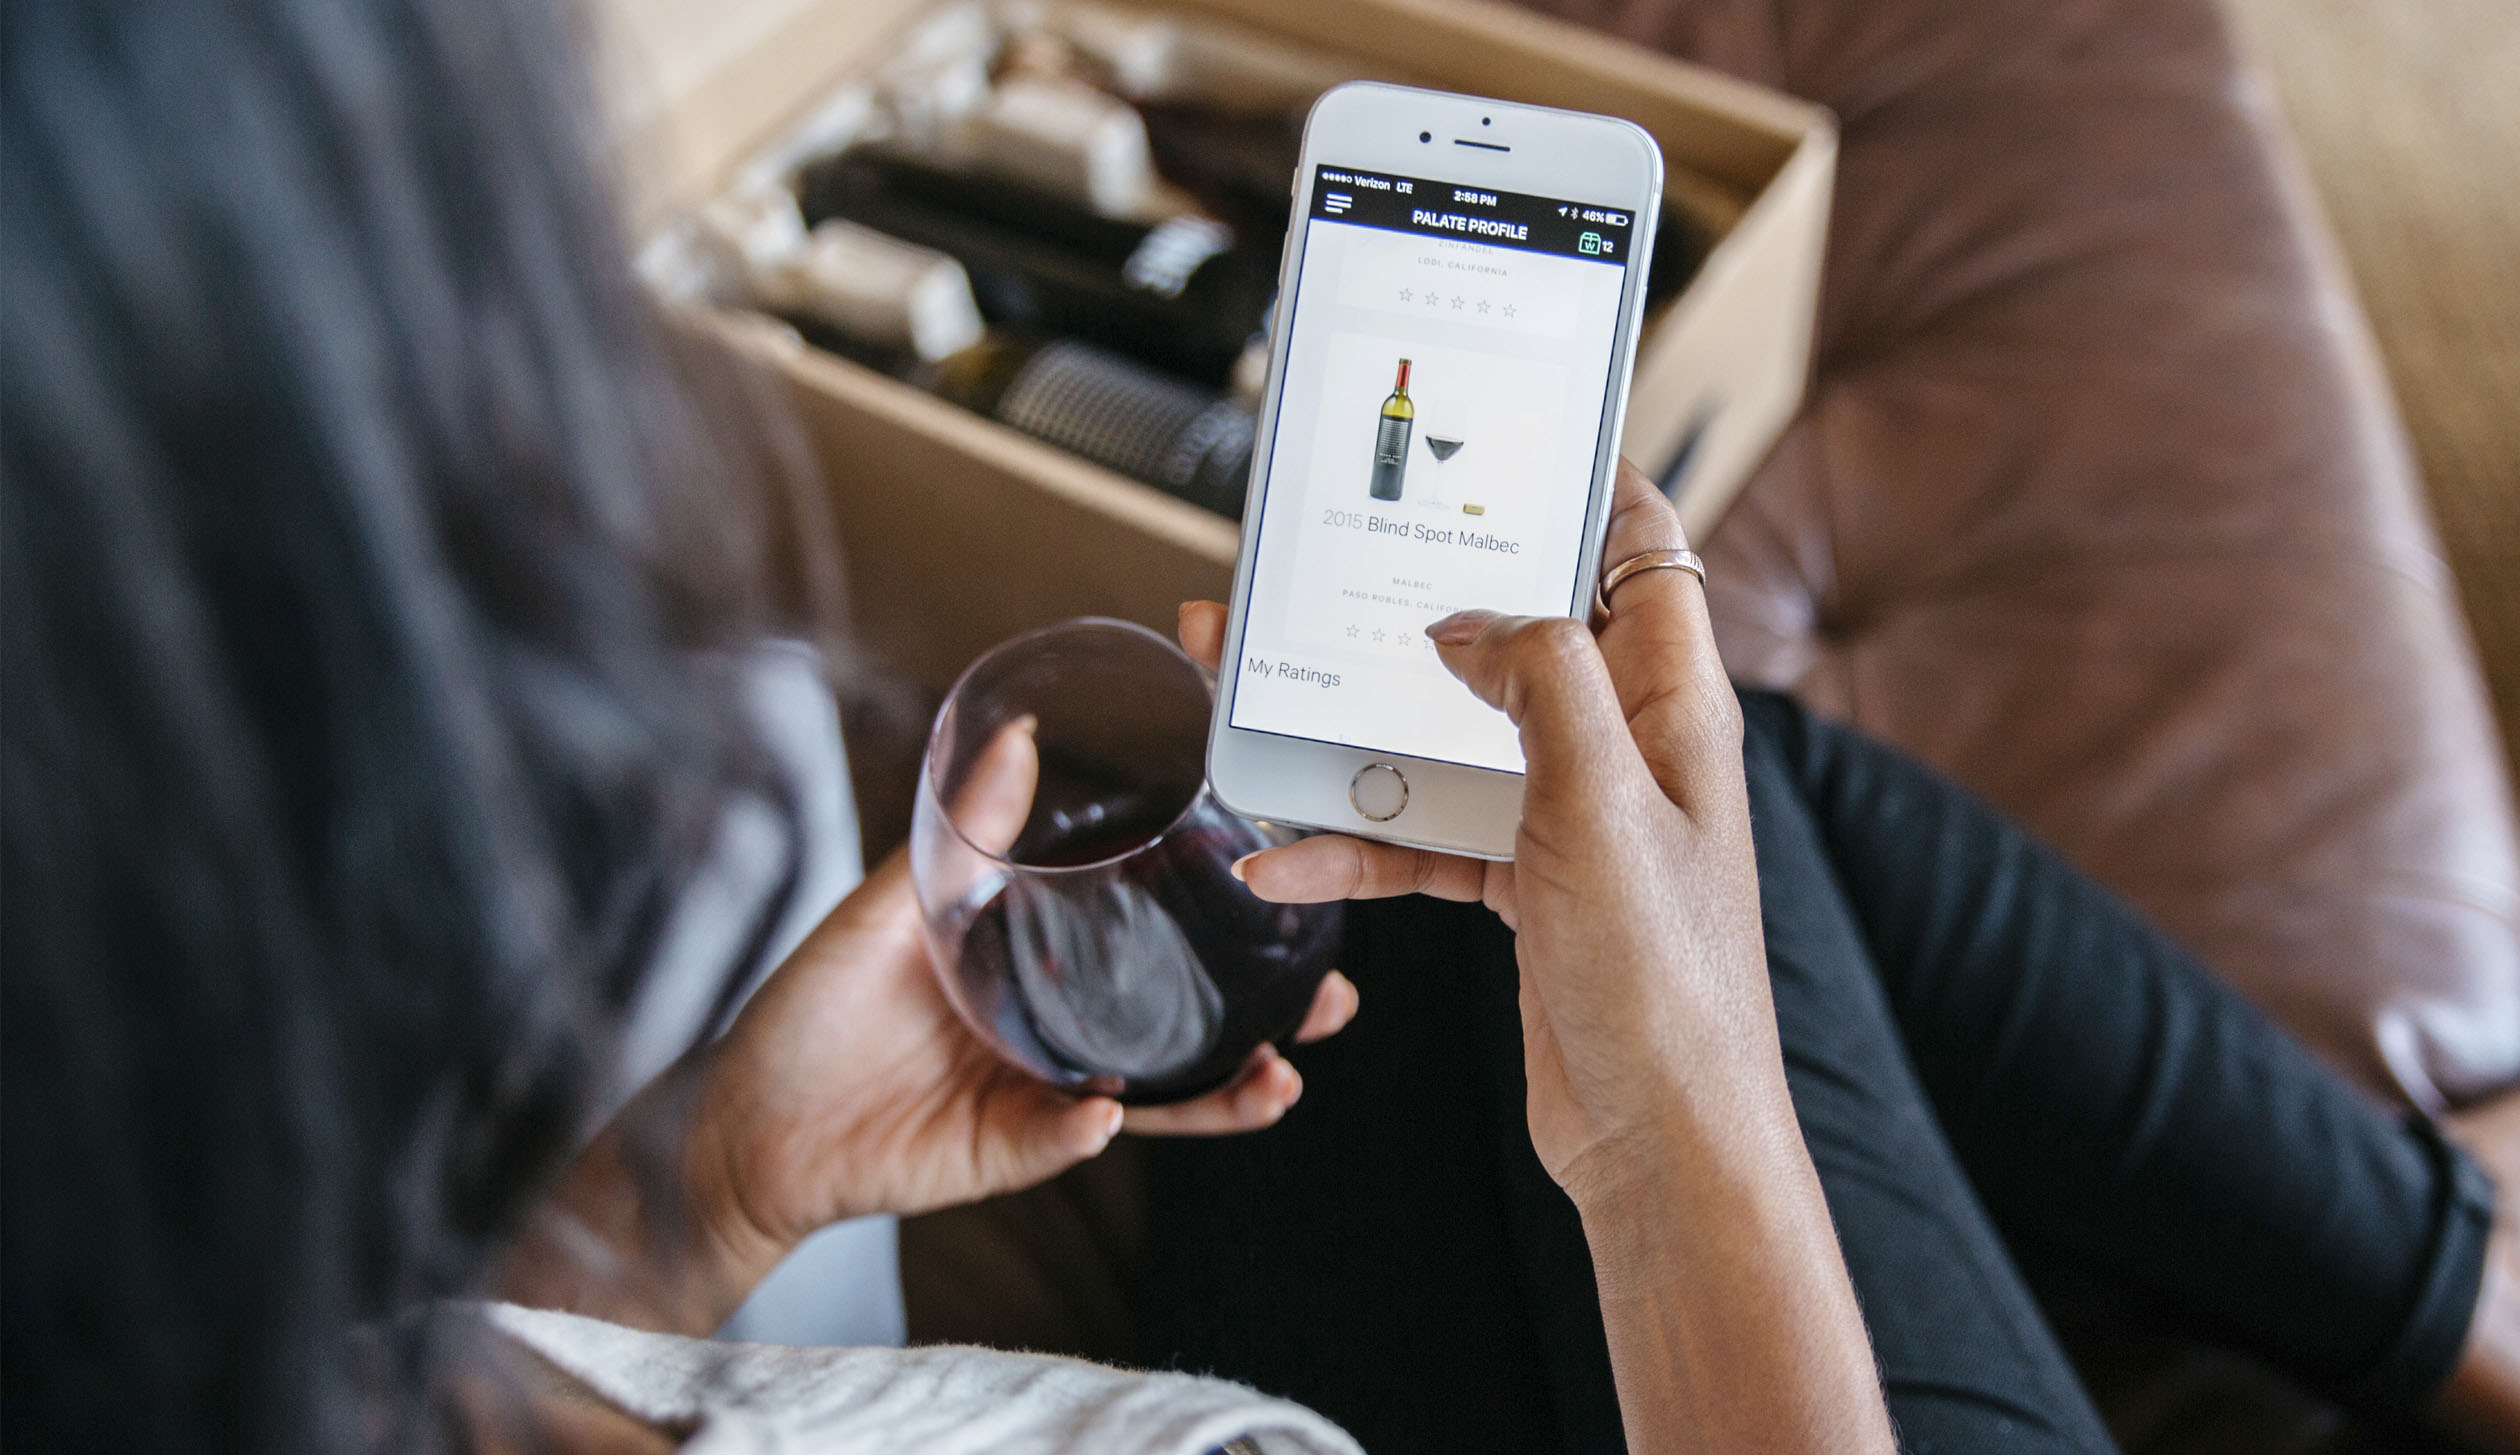 The Winc app, an online wine club, in use by a member.